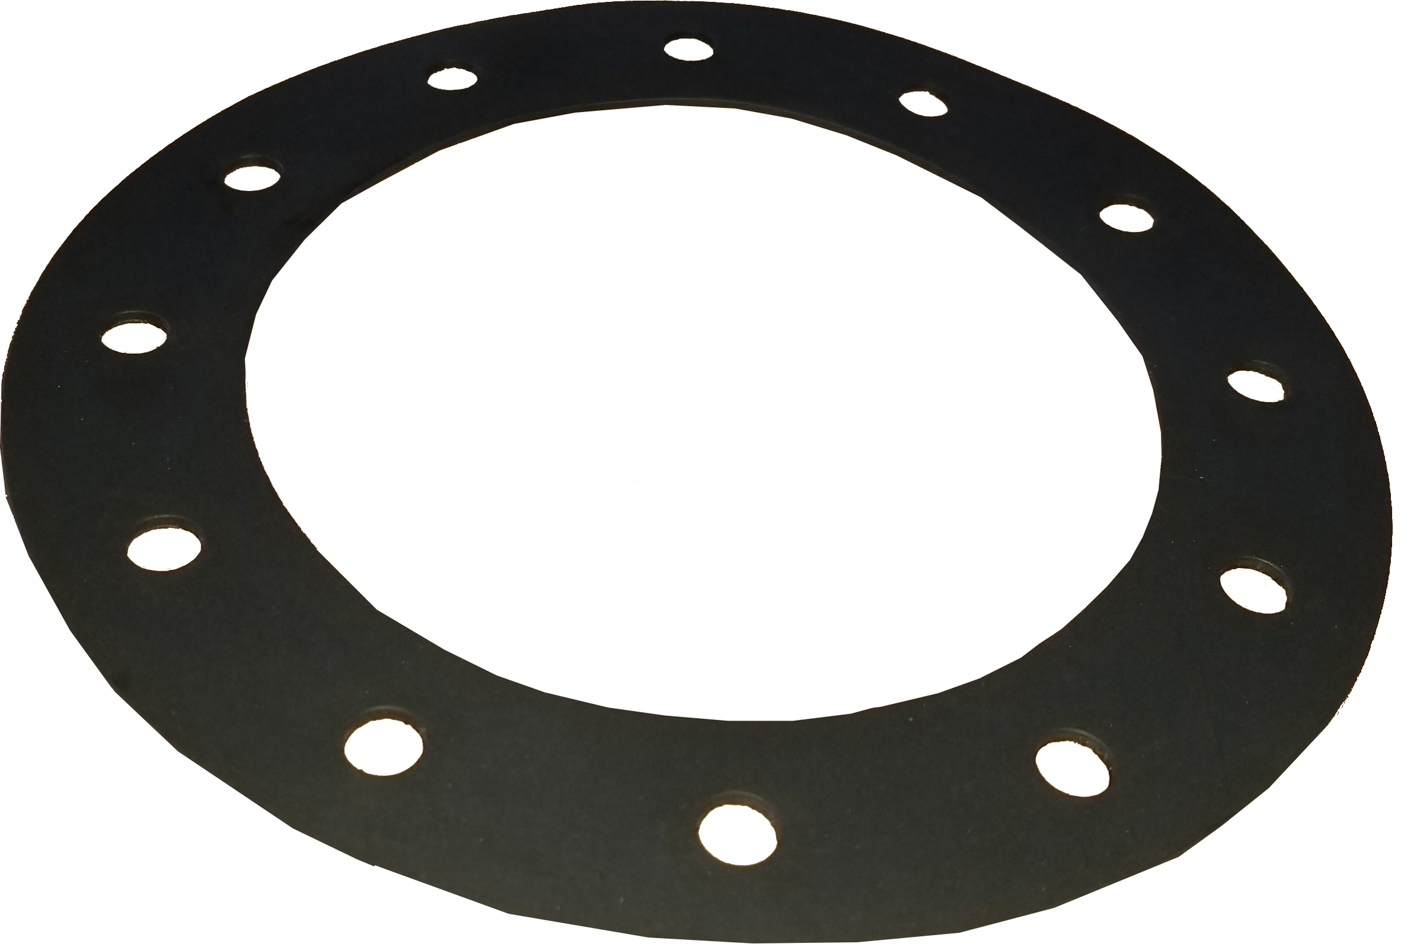 0113 Rci Gasket Fill Neck 12-Hole for Aluminum Cells